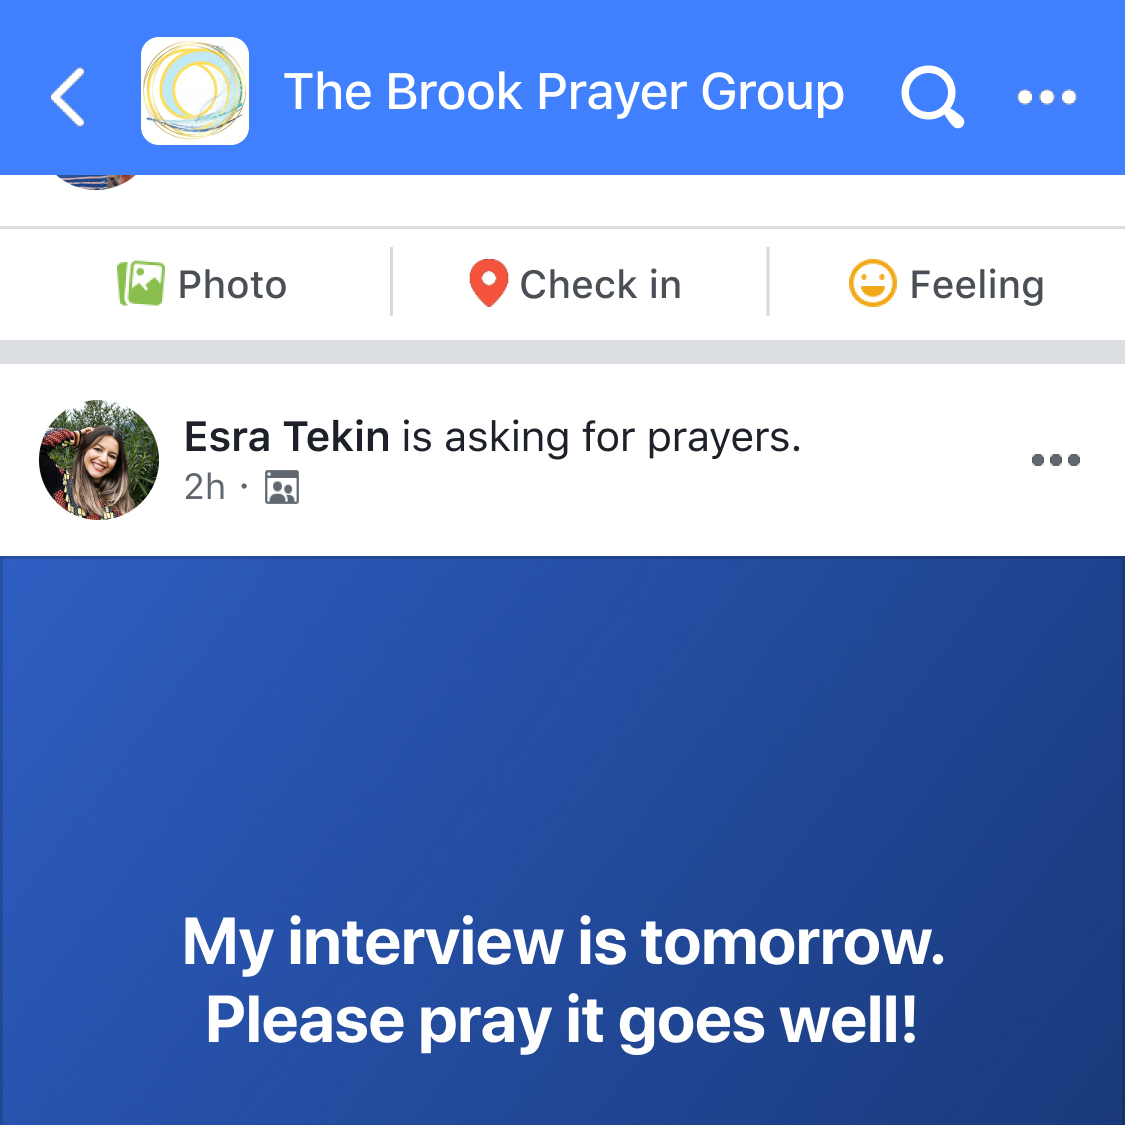 This image provided by Facebook in August 2021 shows a simulation of the social media company's prayer request feature. The tool has been embraced by some religious leaders as a cutting-edge way to engage the faithful online. Others are eyeing it warily as they weigh its usefulness against the privacy and security concerns they have with Facebook. (Facebook via AP)